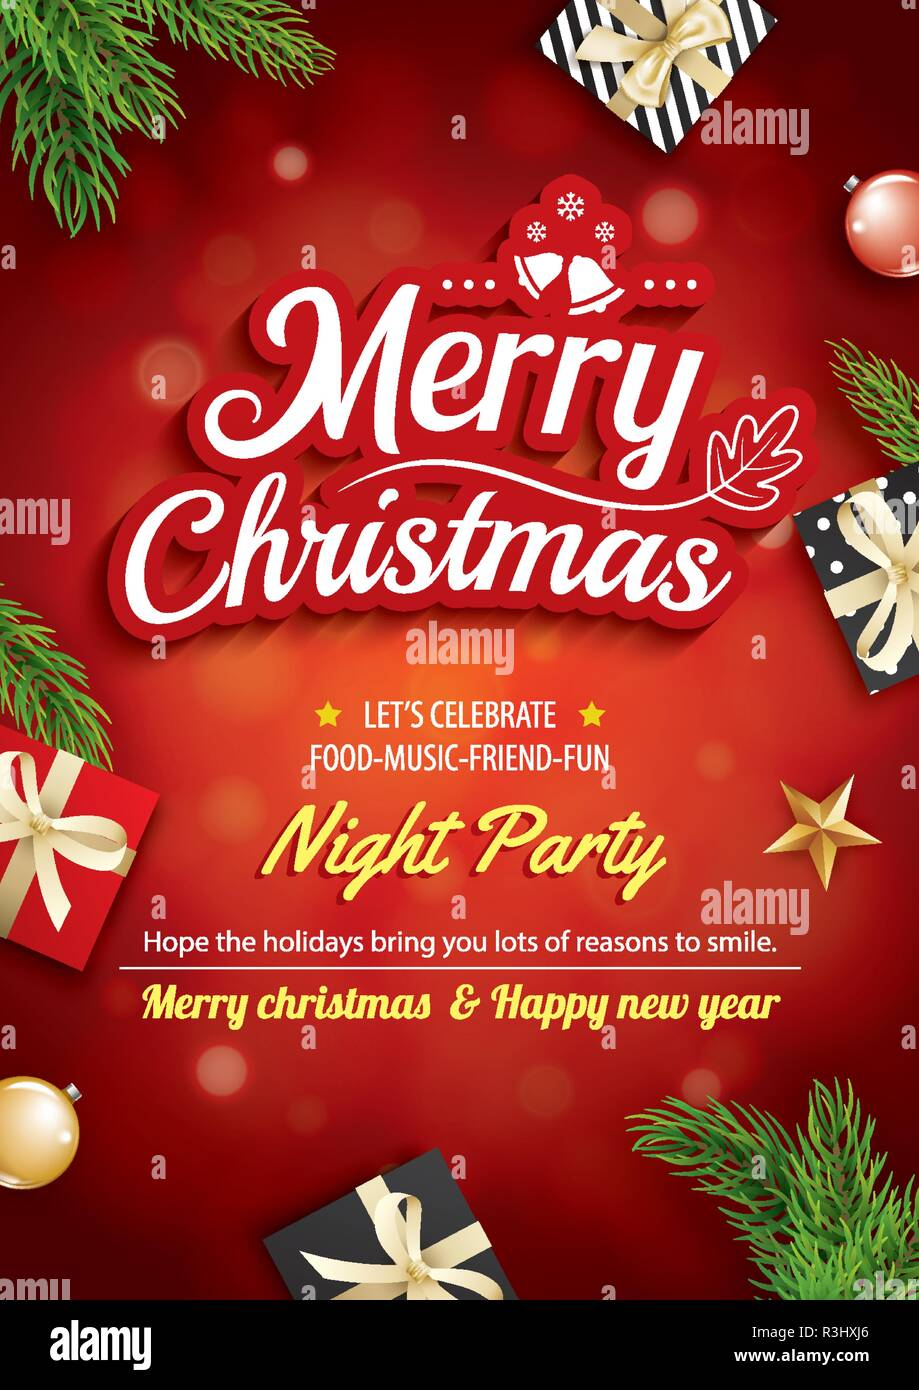 Merry Christmas Greeting Card And Party On Red Background